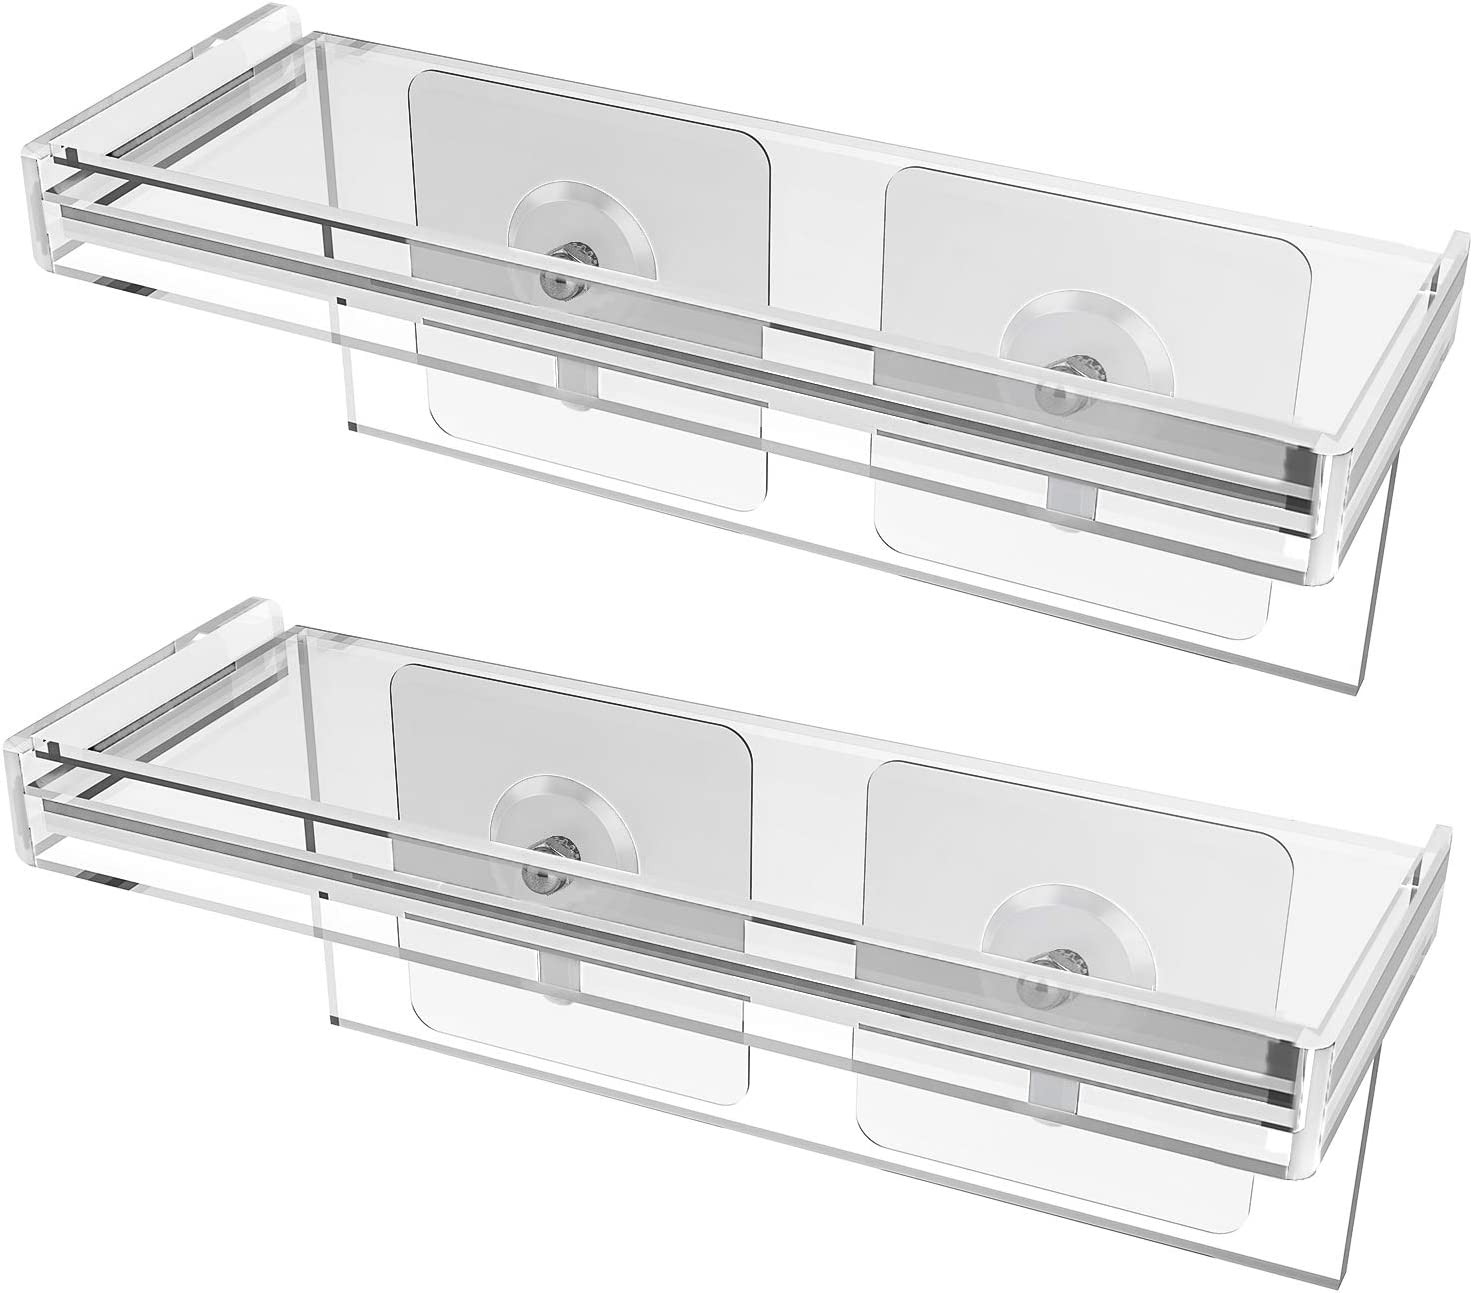 HOMENOTE Set of 2 Acrylic Floating Window Plant Shelf 7 inch Wall Shelf for Small Succulent Pots – Perfect for Kitchen Spice Rack or Bathroom Mirror Shelf